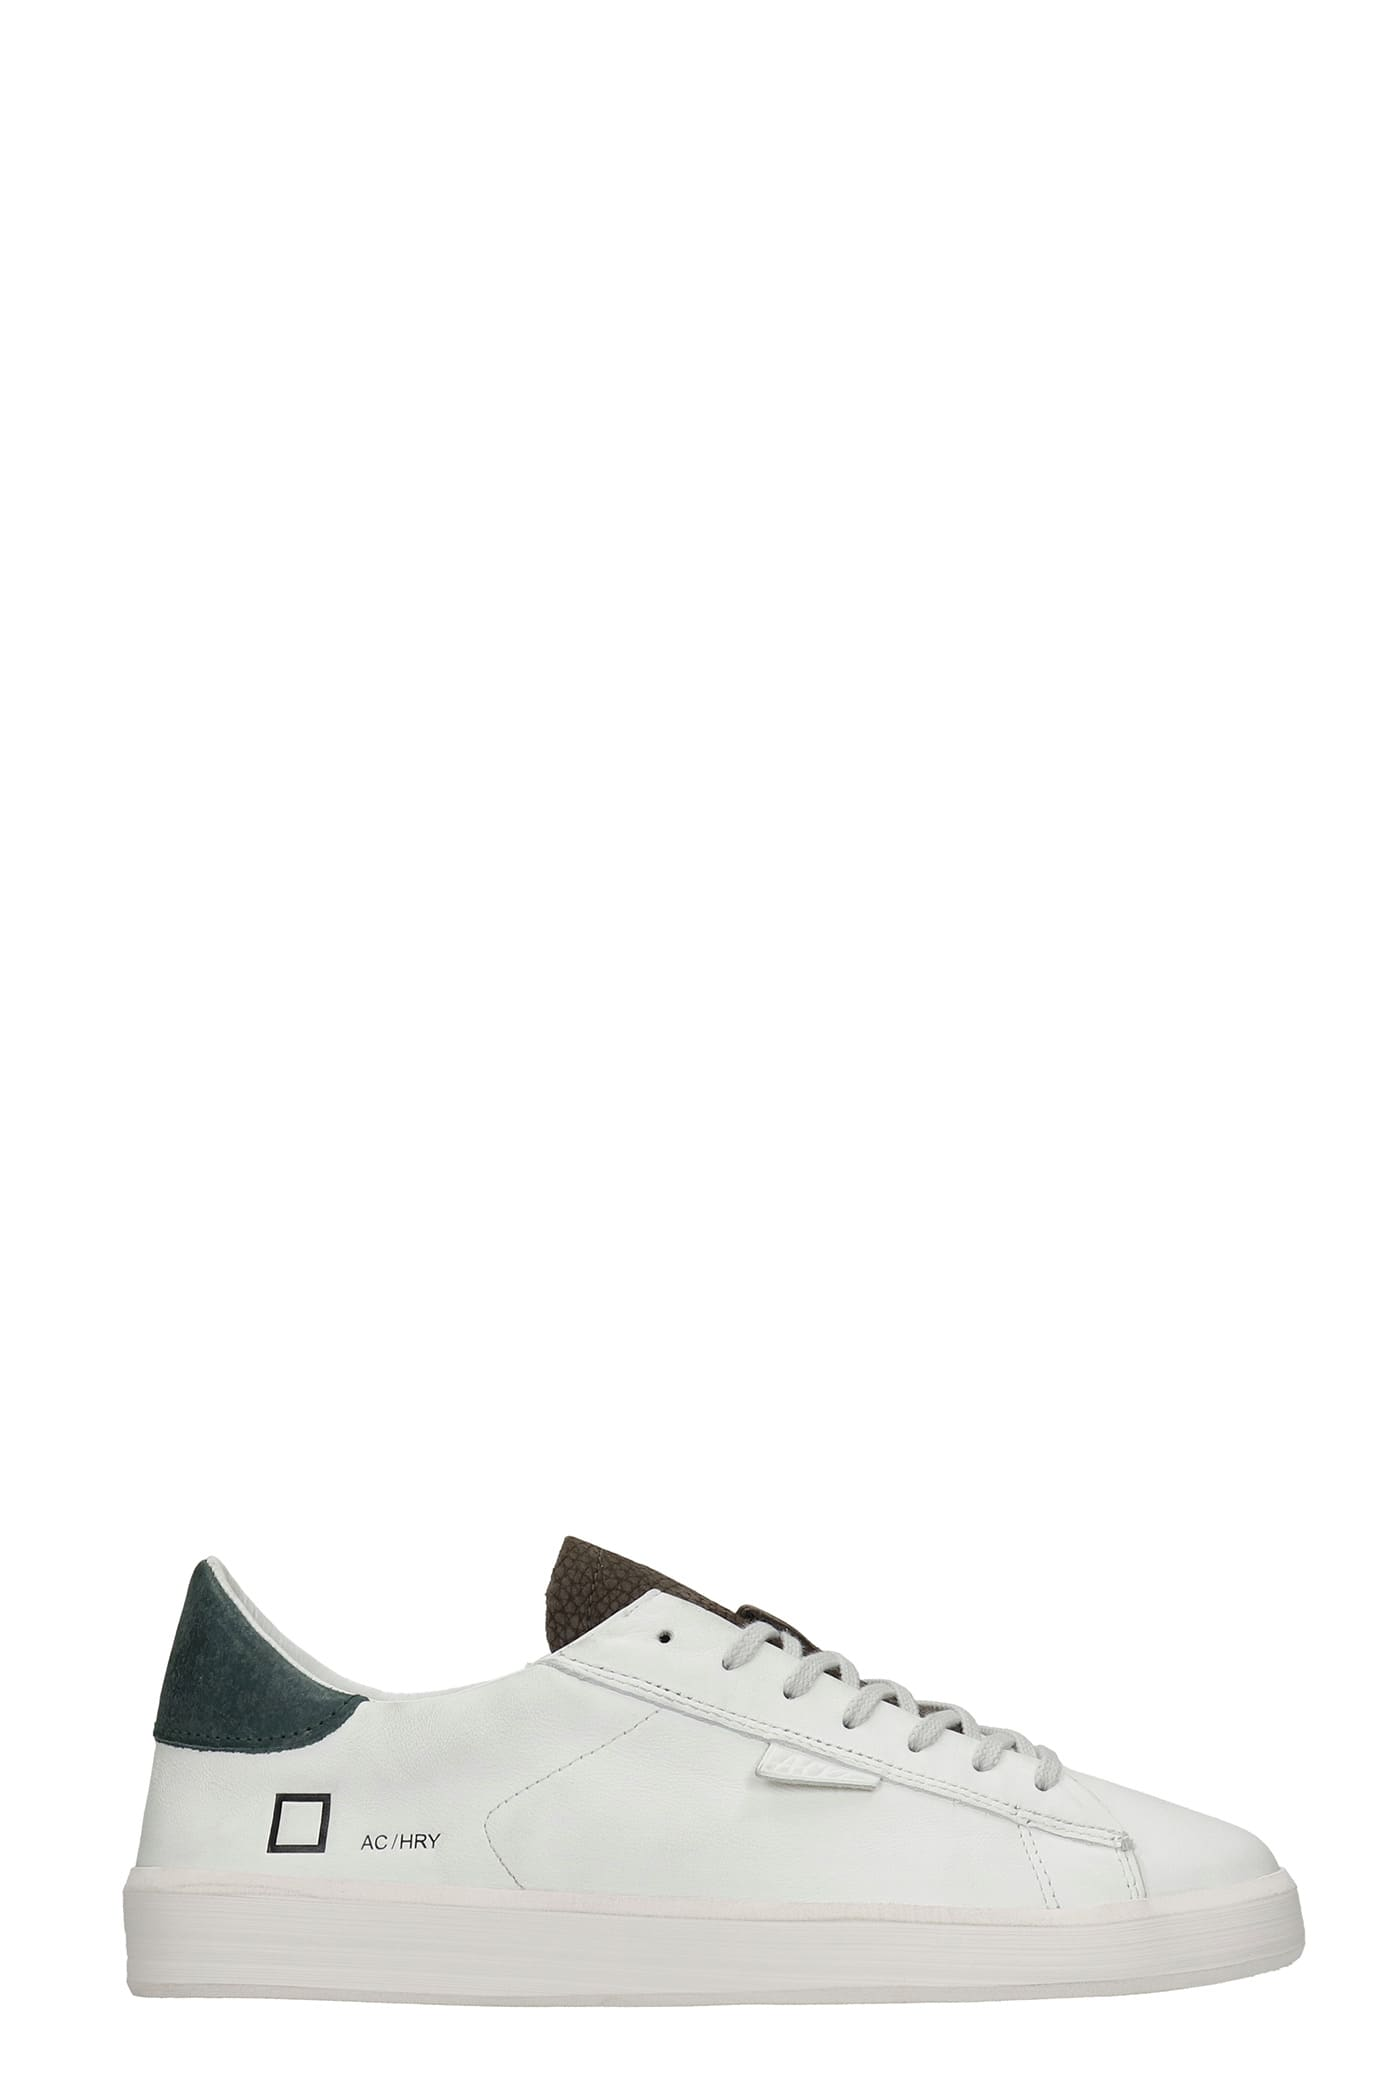 Ace Horsy Sneakers In White Leather